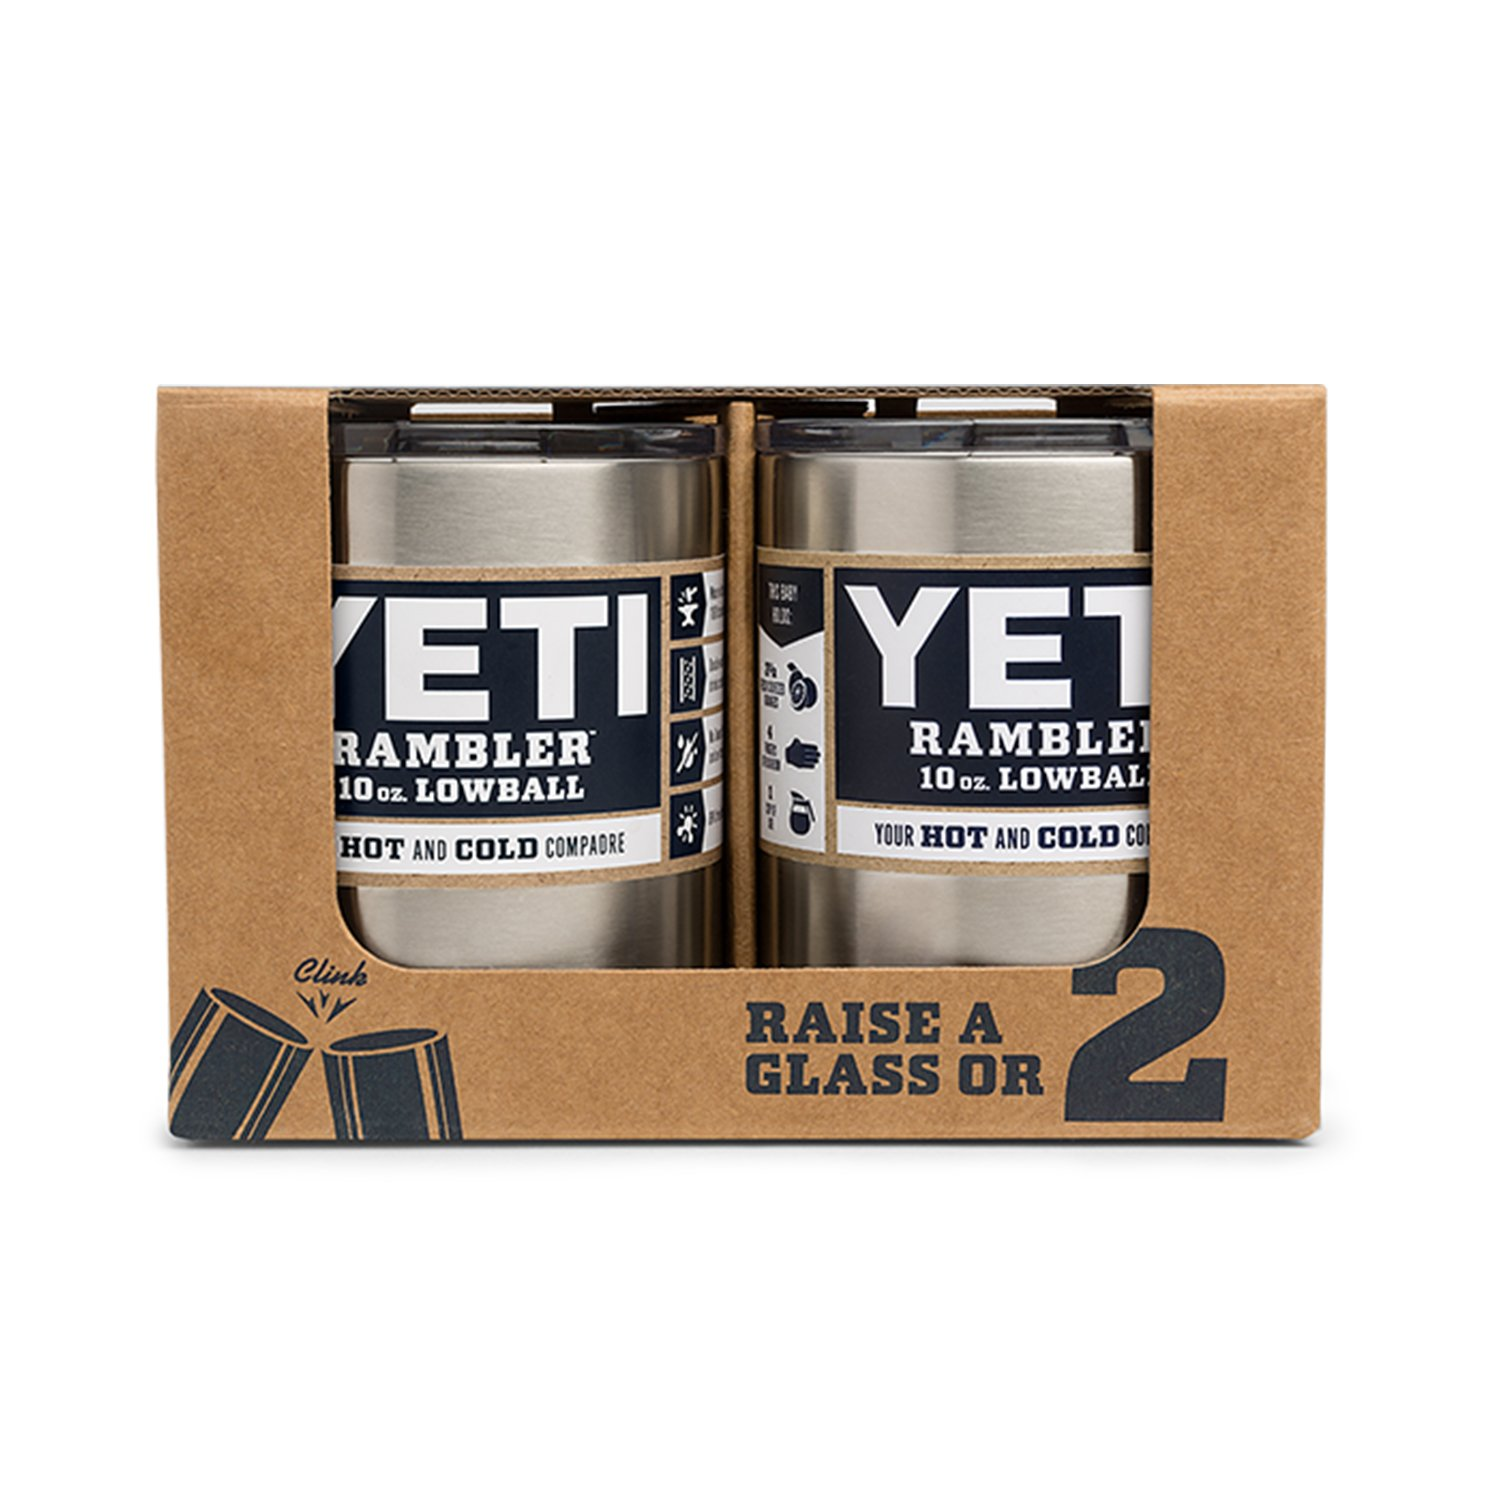 YETI Rambler 10oz Vacuum Insulated Stainless Steel Lowball with Lid (2 Pack Stainless) by YETI